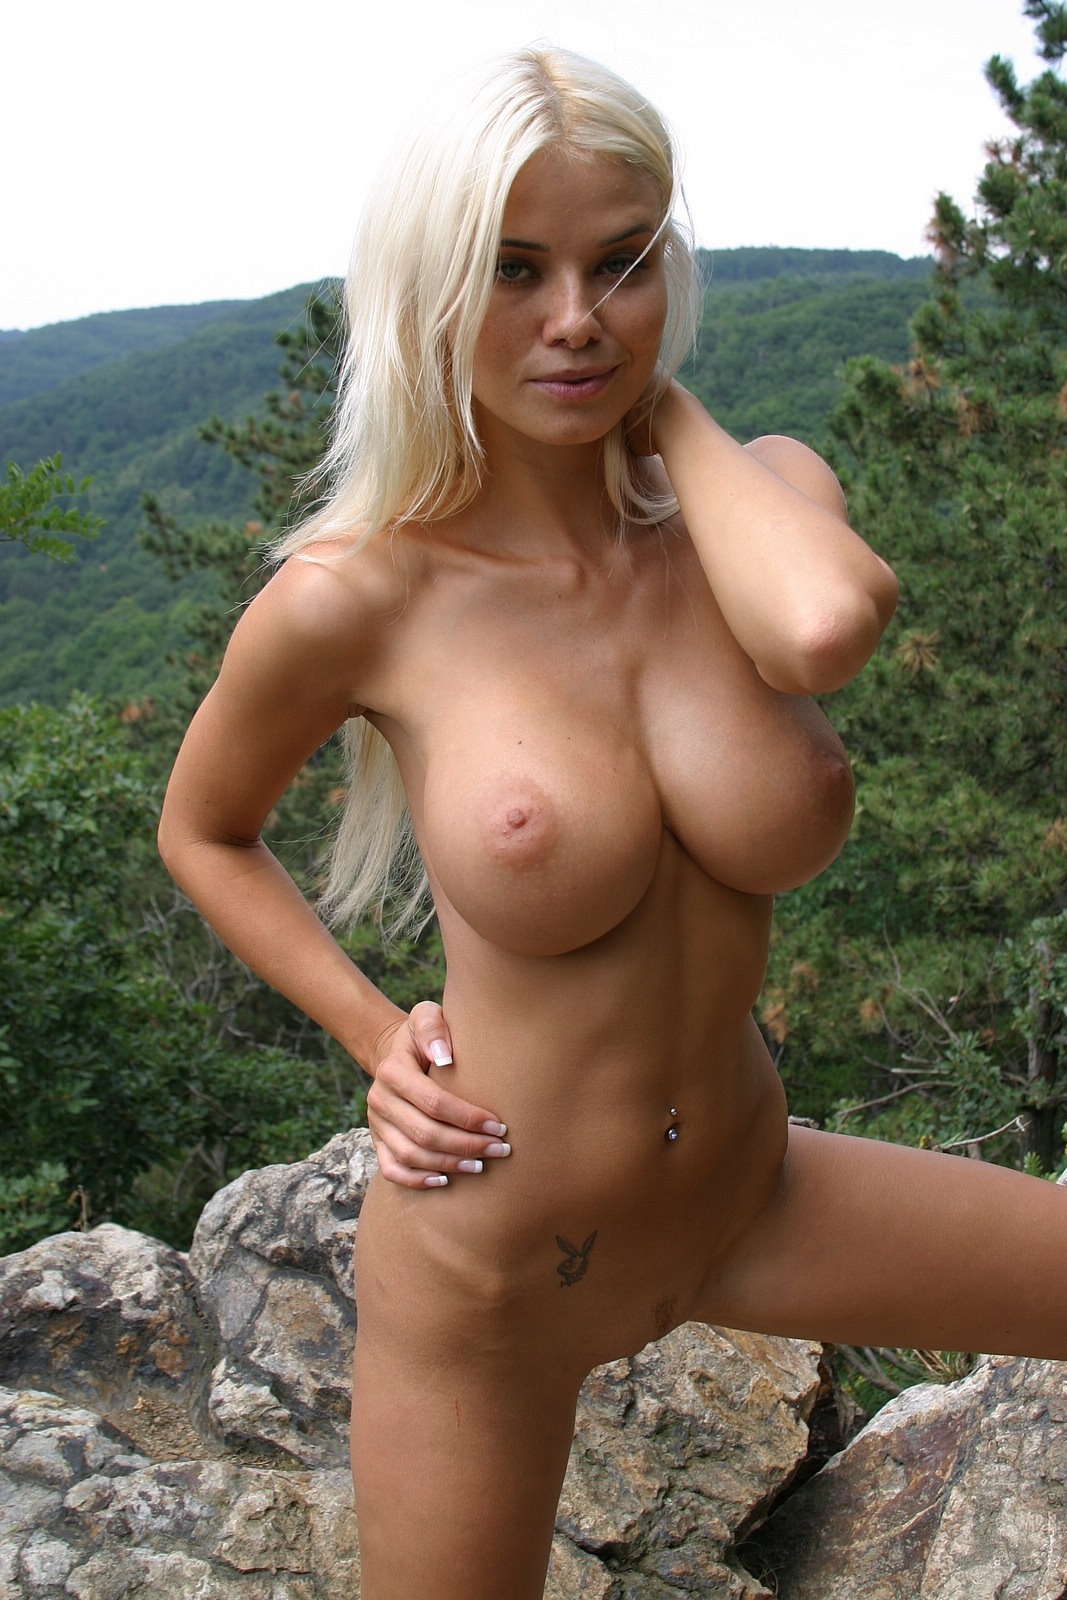 katerina-nude-mountain-lingerie-huge-tits-blonde-22